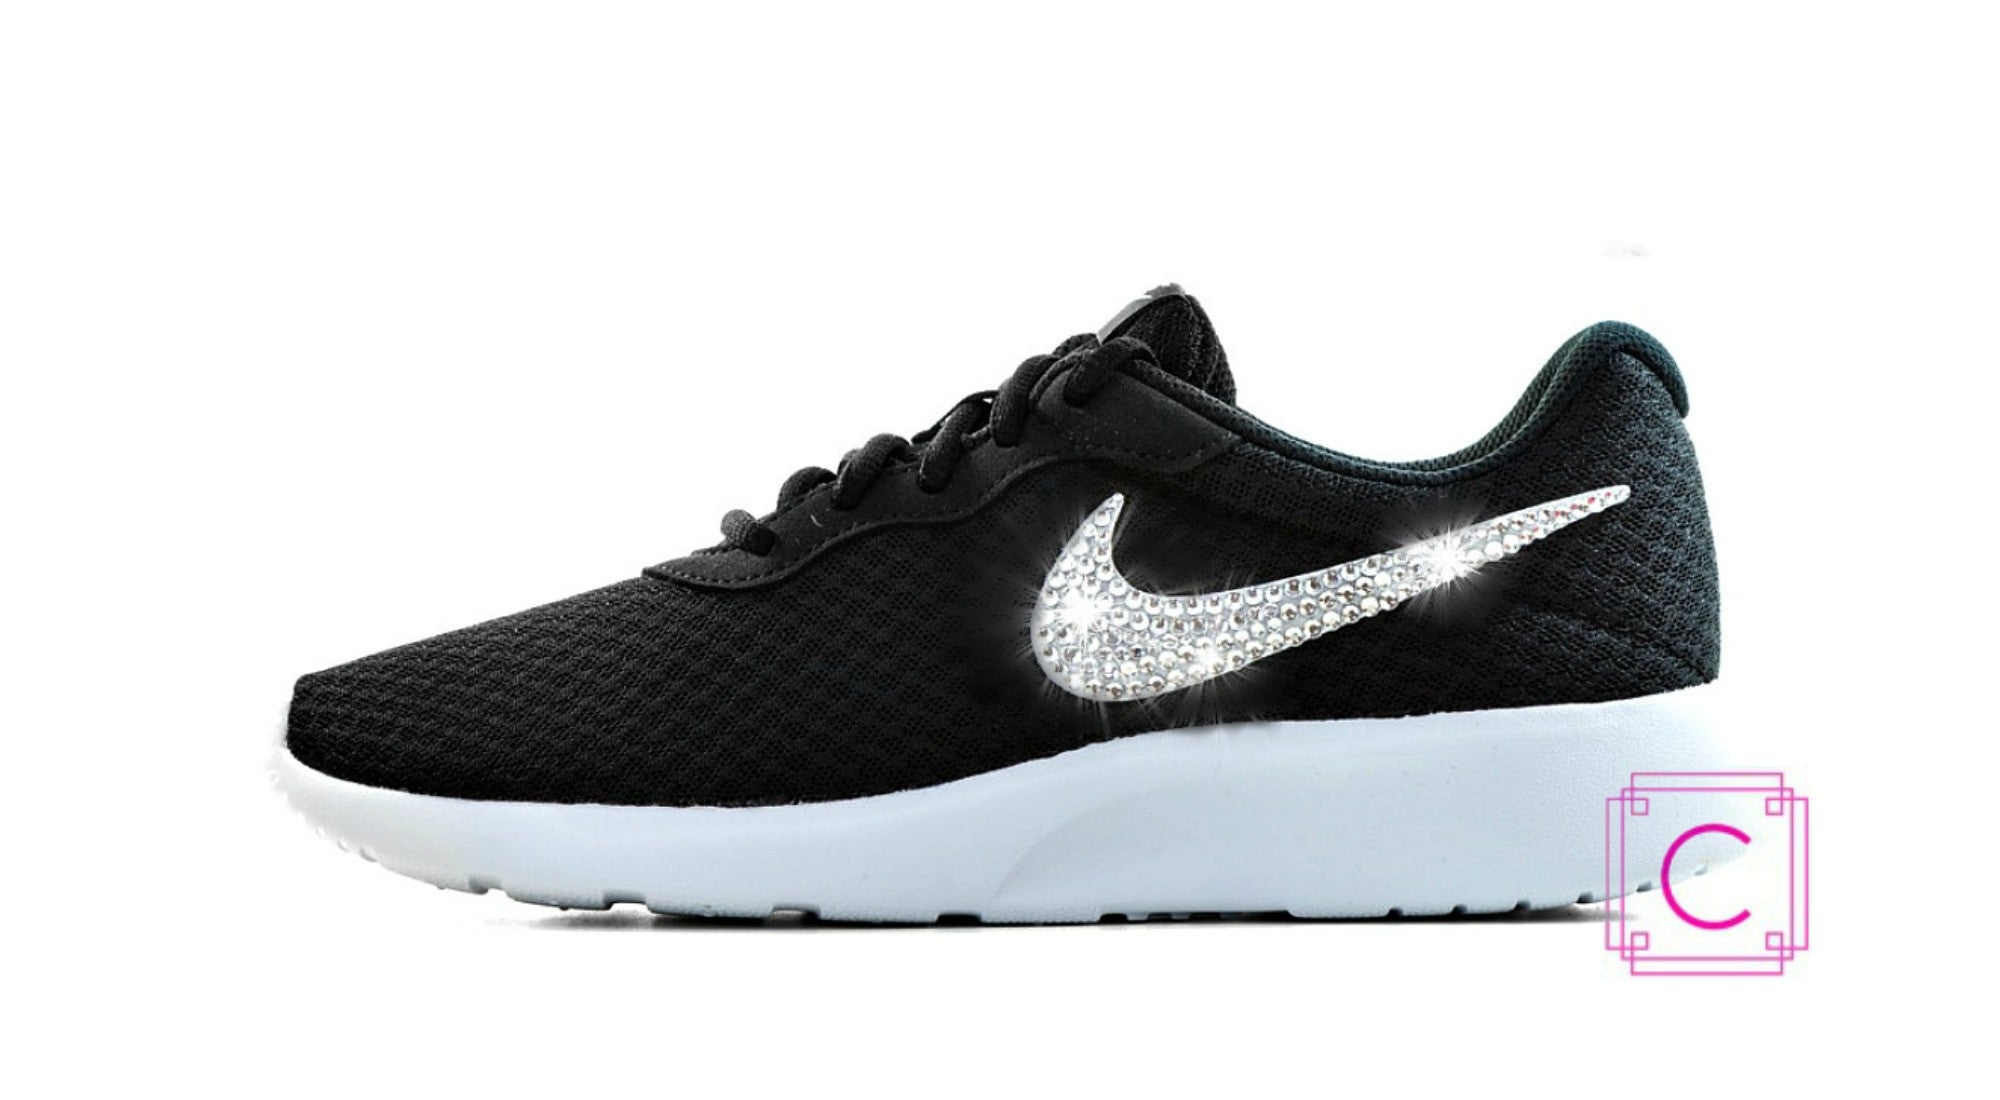 Women's Nike® Tanjun SE Womens Running Shoes in Black/White w/SWAROVSKI® Crystal details - CRYSTAHHLED